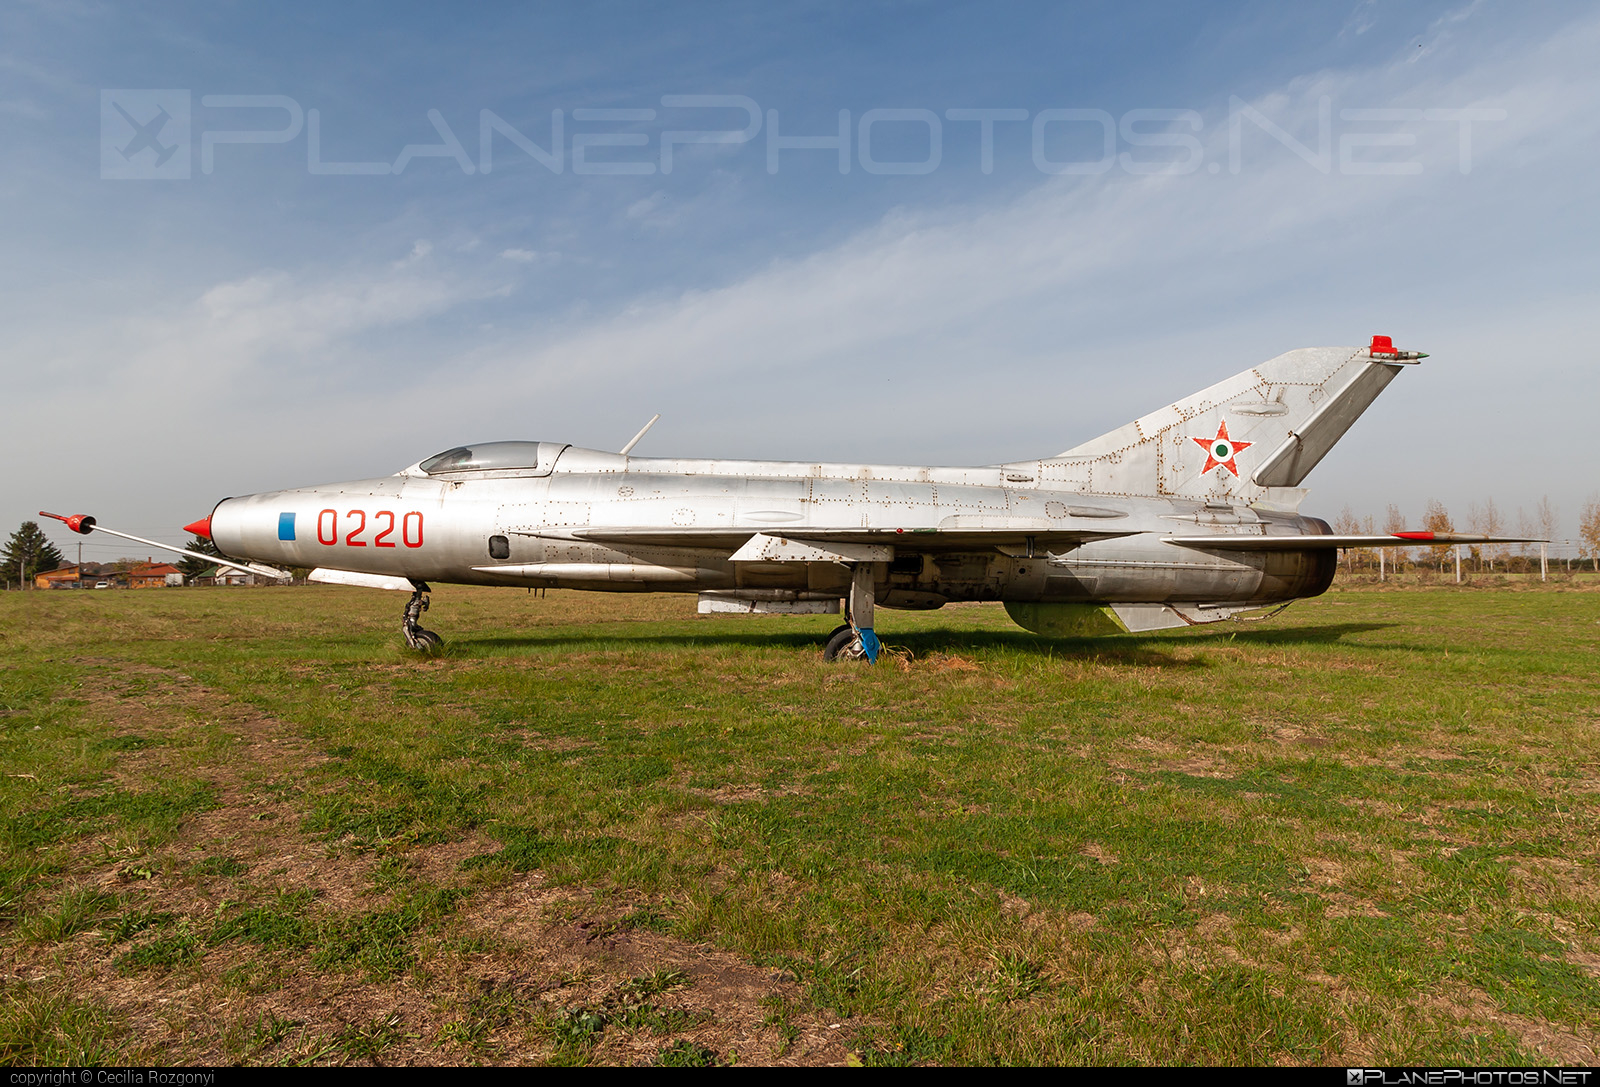 Aero S-106 - 0220 operated by Vzdušné síly AČR (Czech Air Force) #aero #aeros106 #czechairforce #mig21 #mig21f13 #vzdusnesilyacr